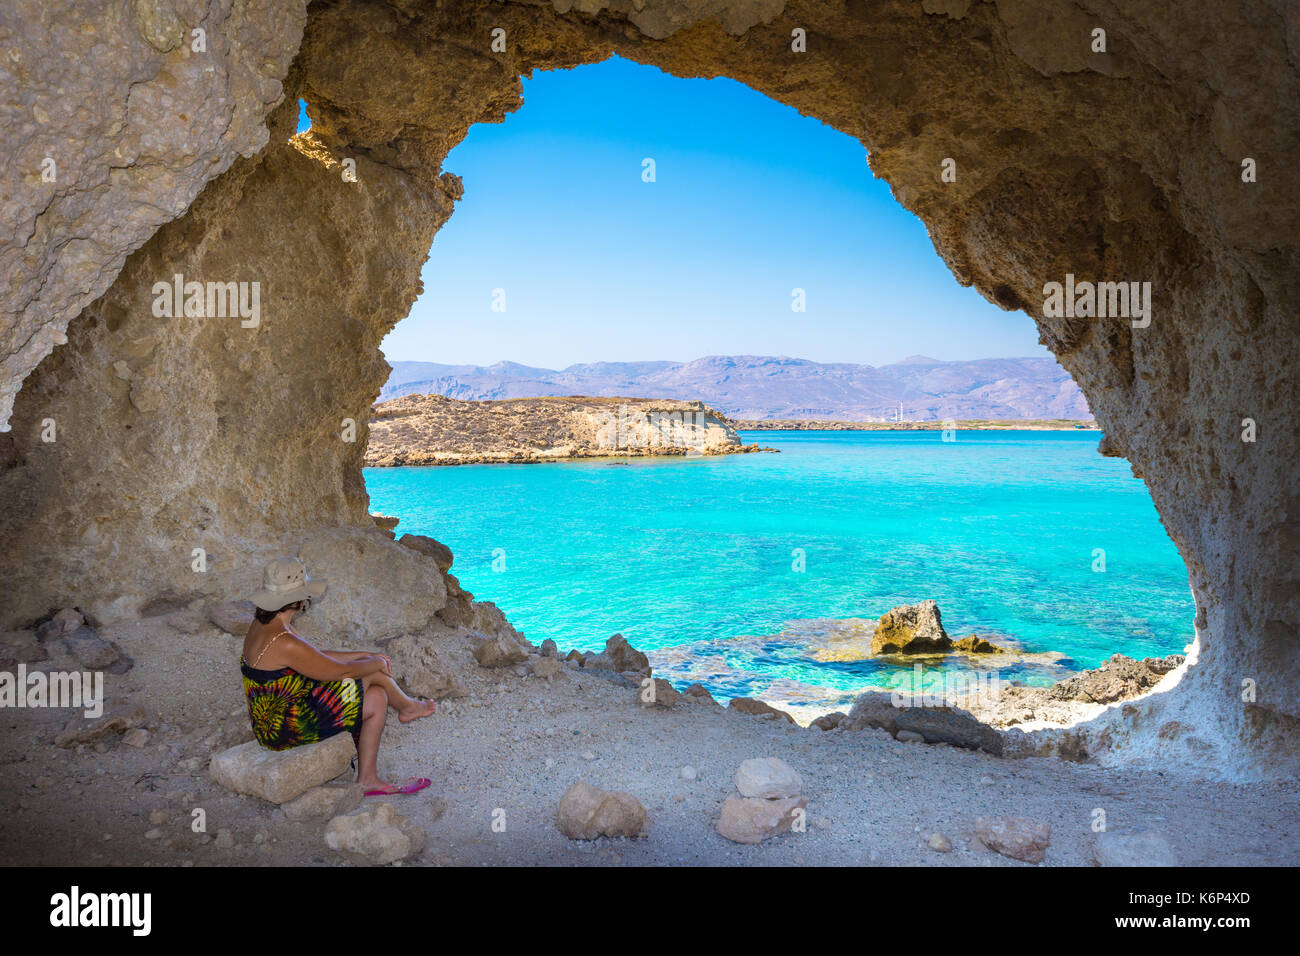 Amazing summer view of woman in a cave at Koufonisi island with magical turquoise waters, lagoons, tropical beaches - Stock Image